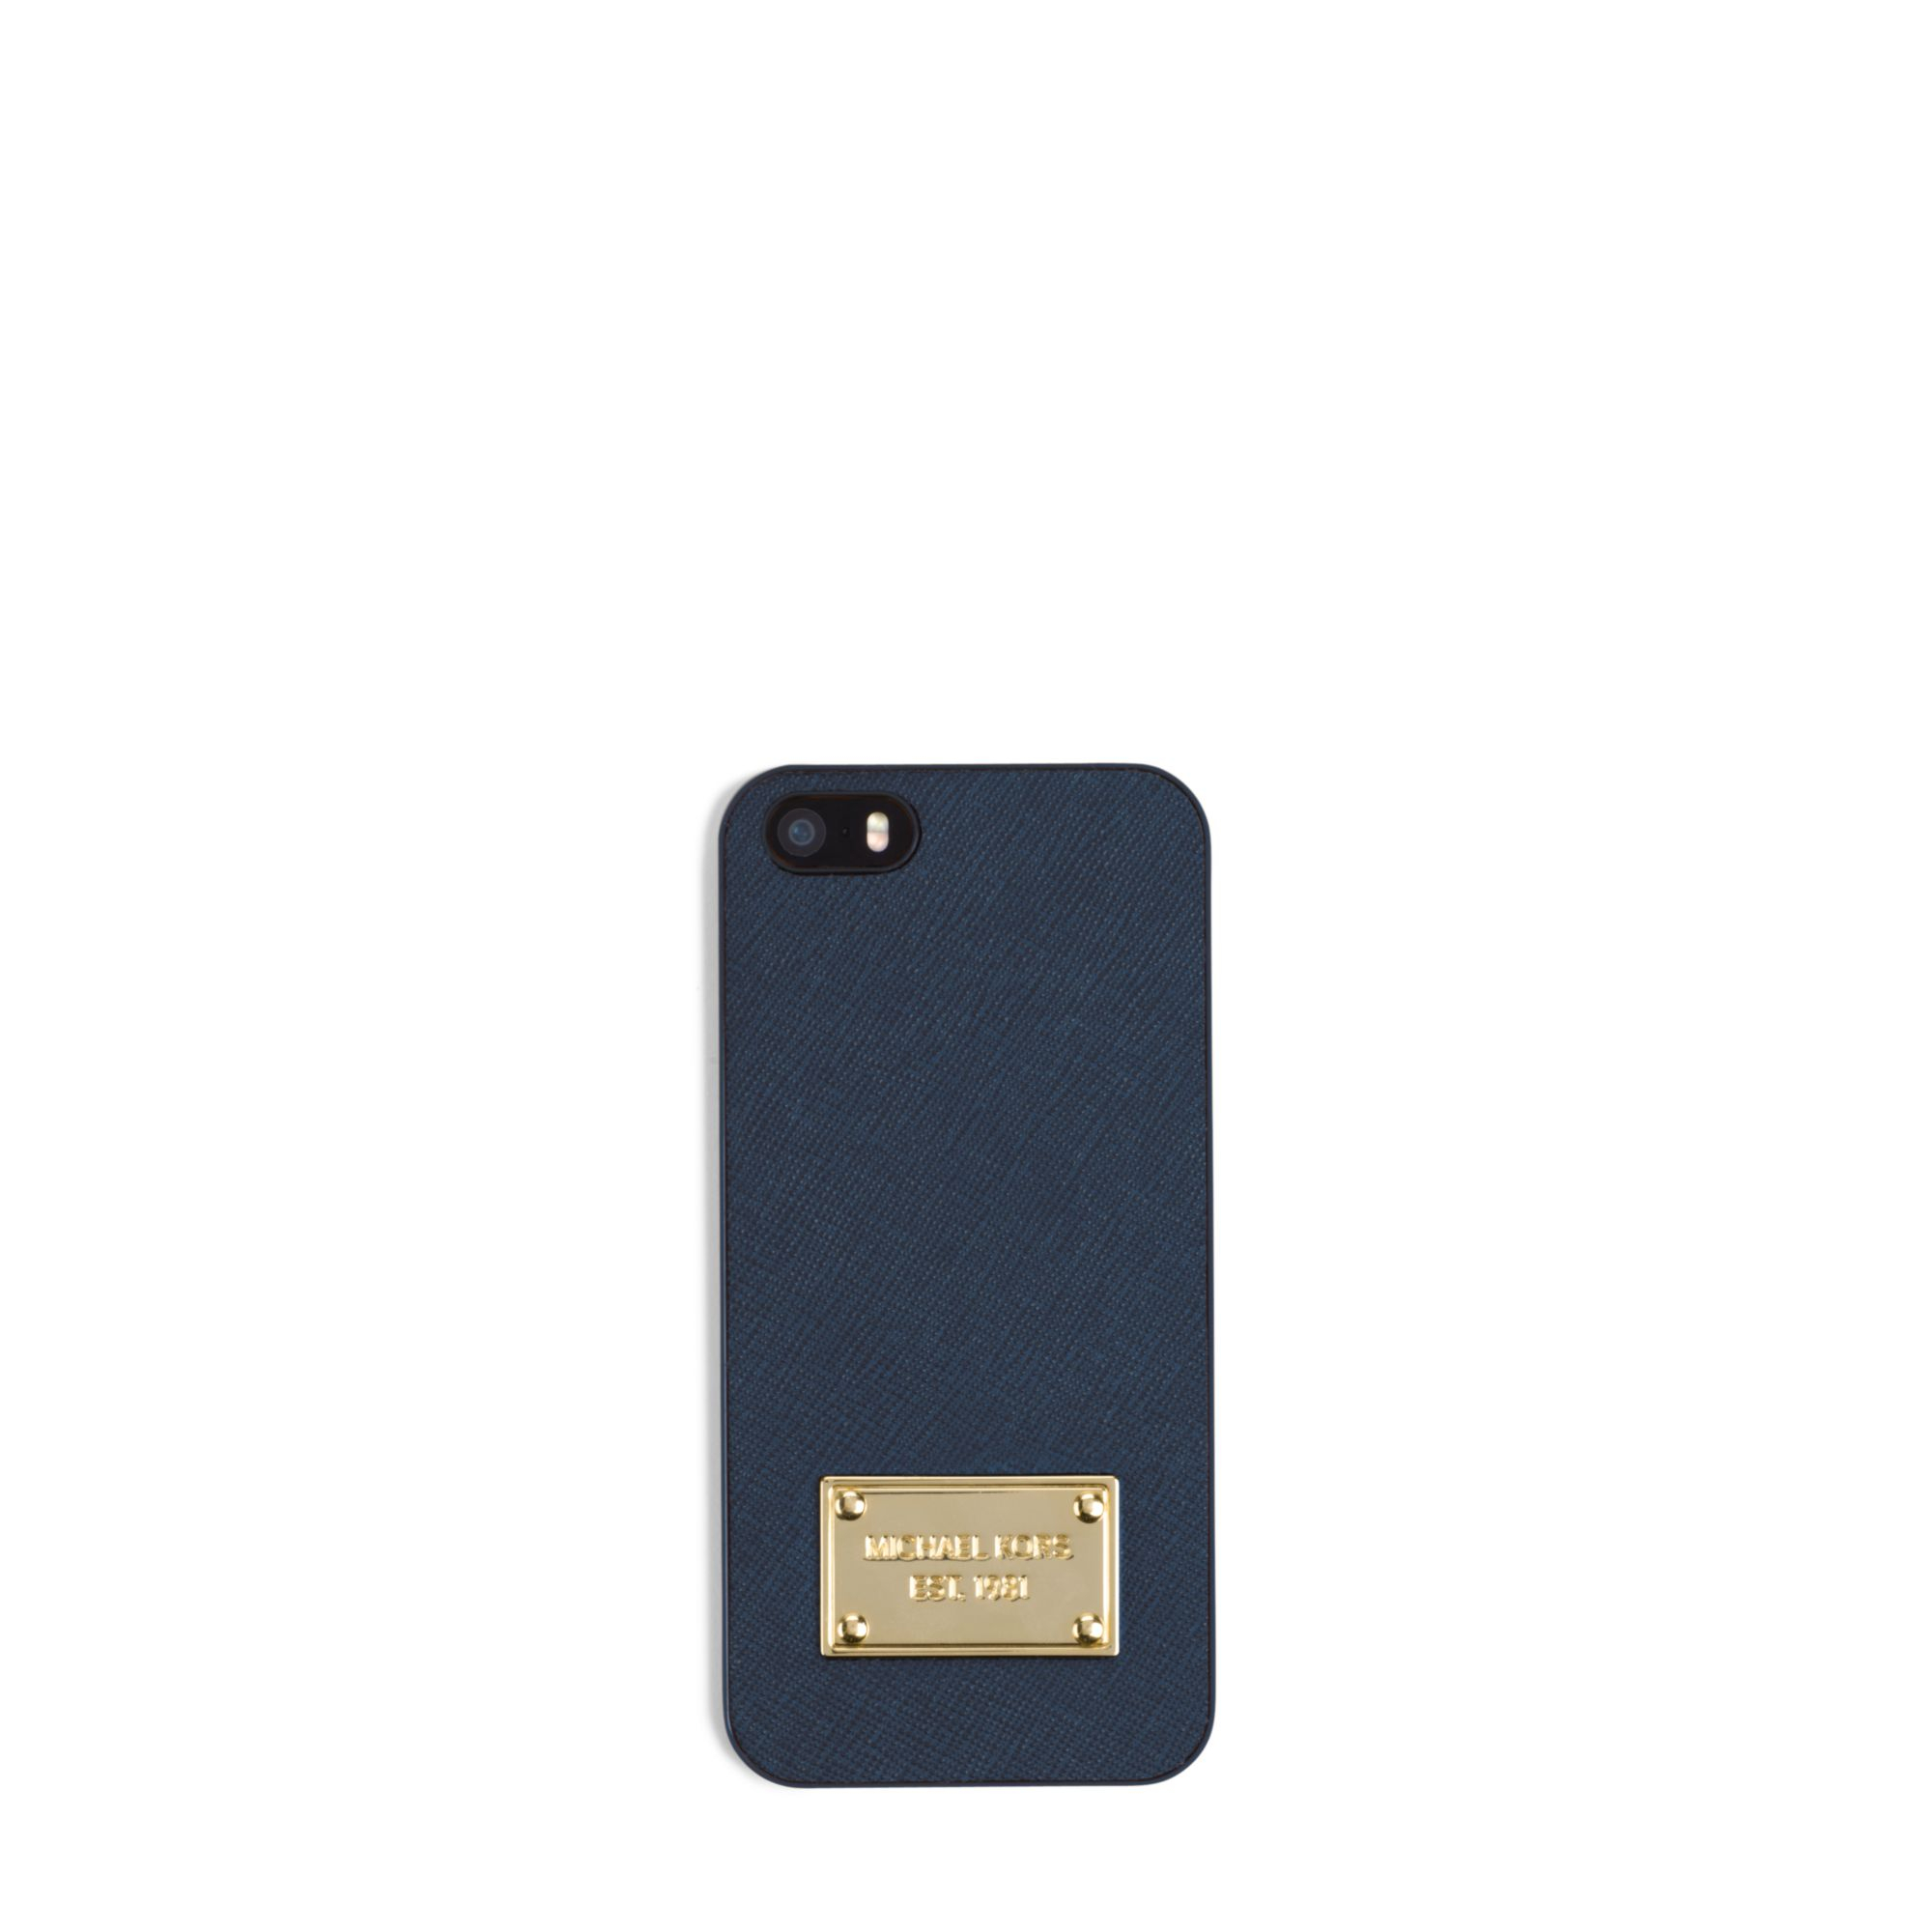 michael kors saffiano leather phone case for iphone 5 in. Black Bedroom Furniture Sets. Home Design Ideas